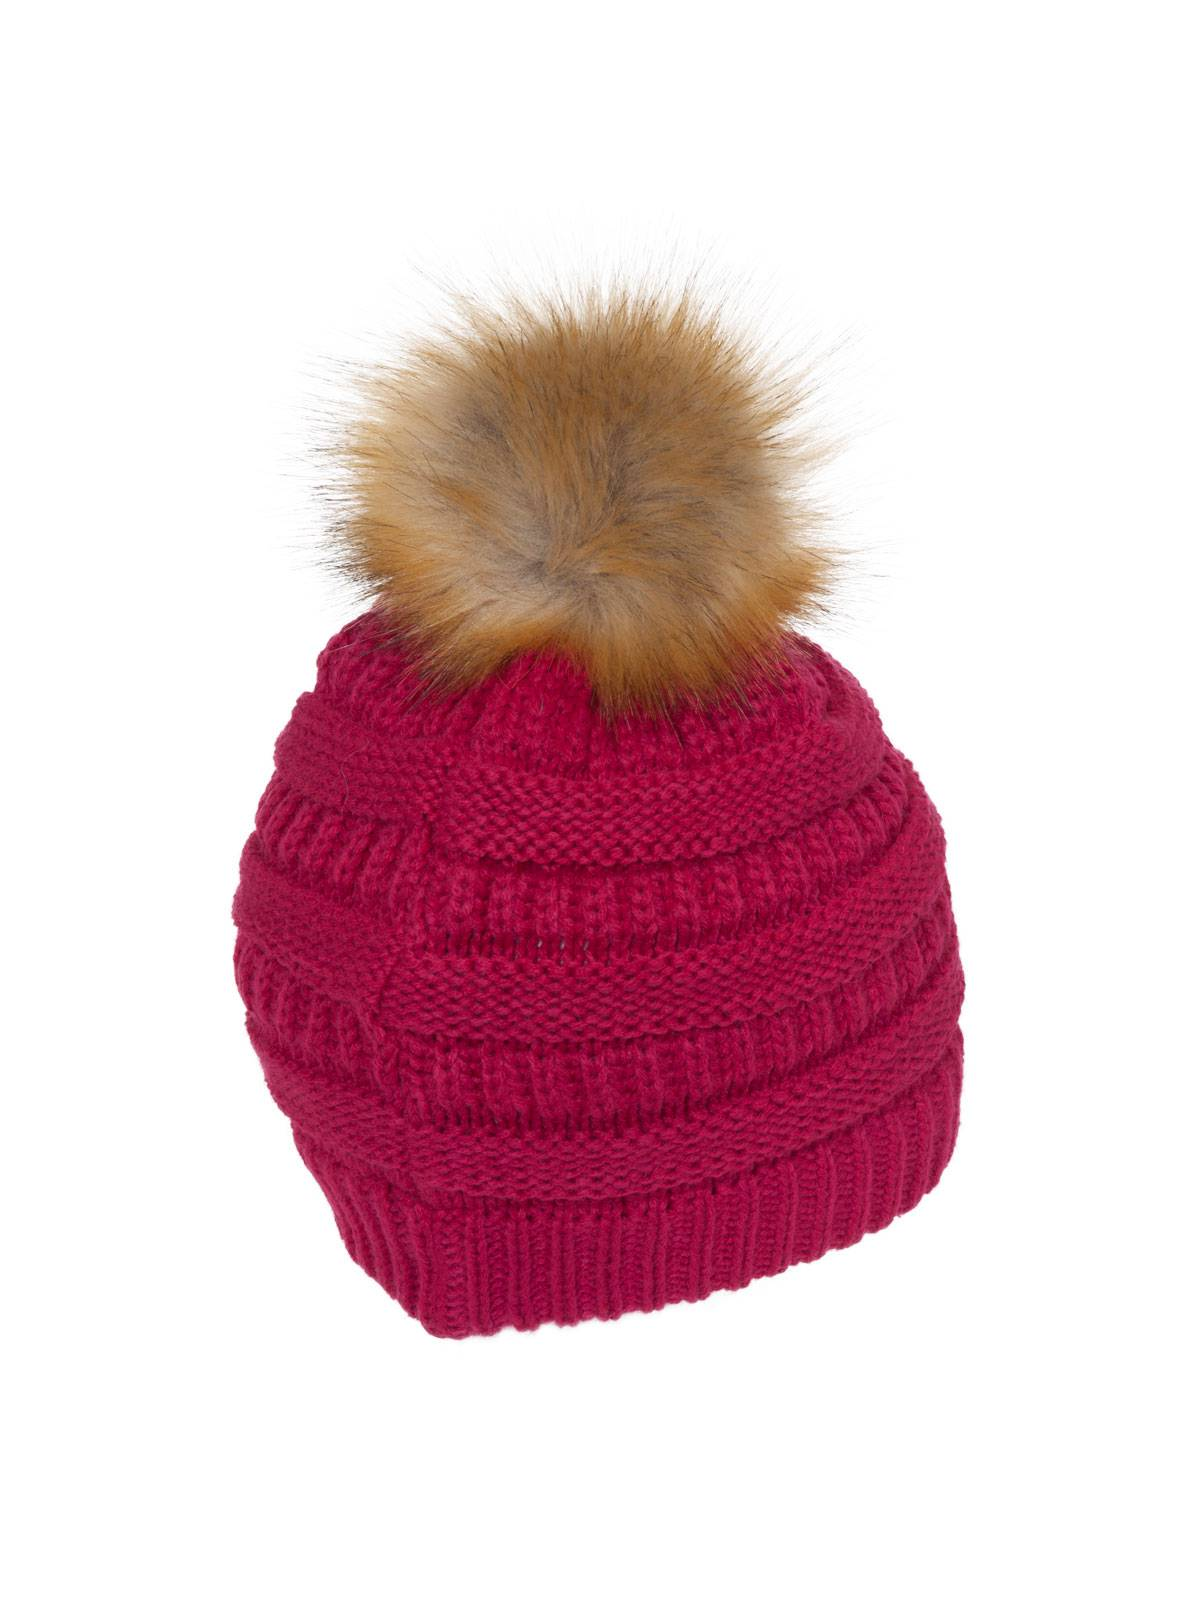 7dae9afed Gravity Threads Cable Knit Faux Fur Pom Pom Beanie Hat